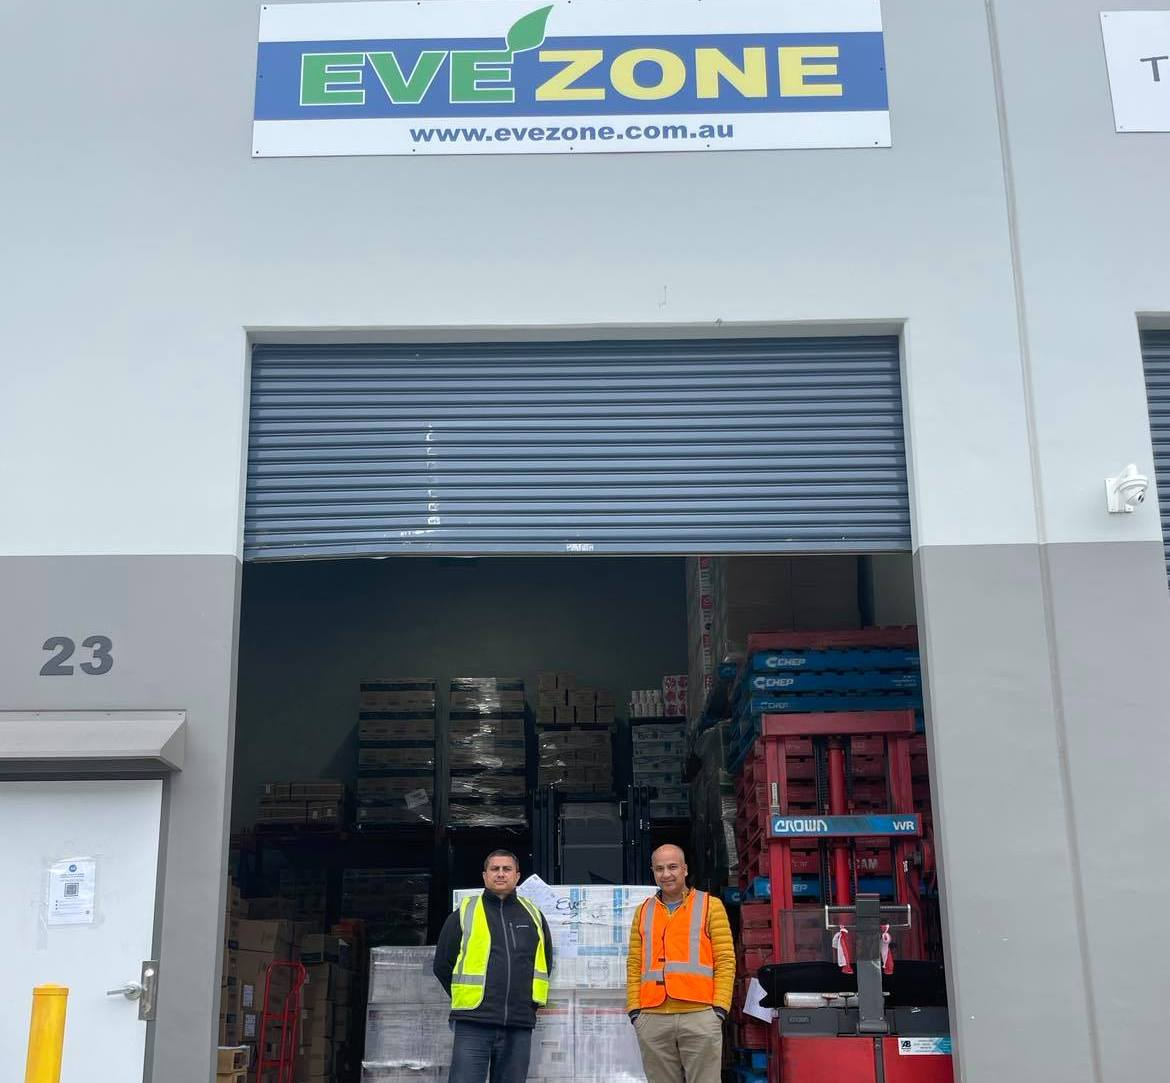 Eve Zone is Health and safety products